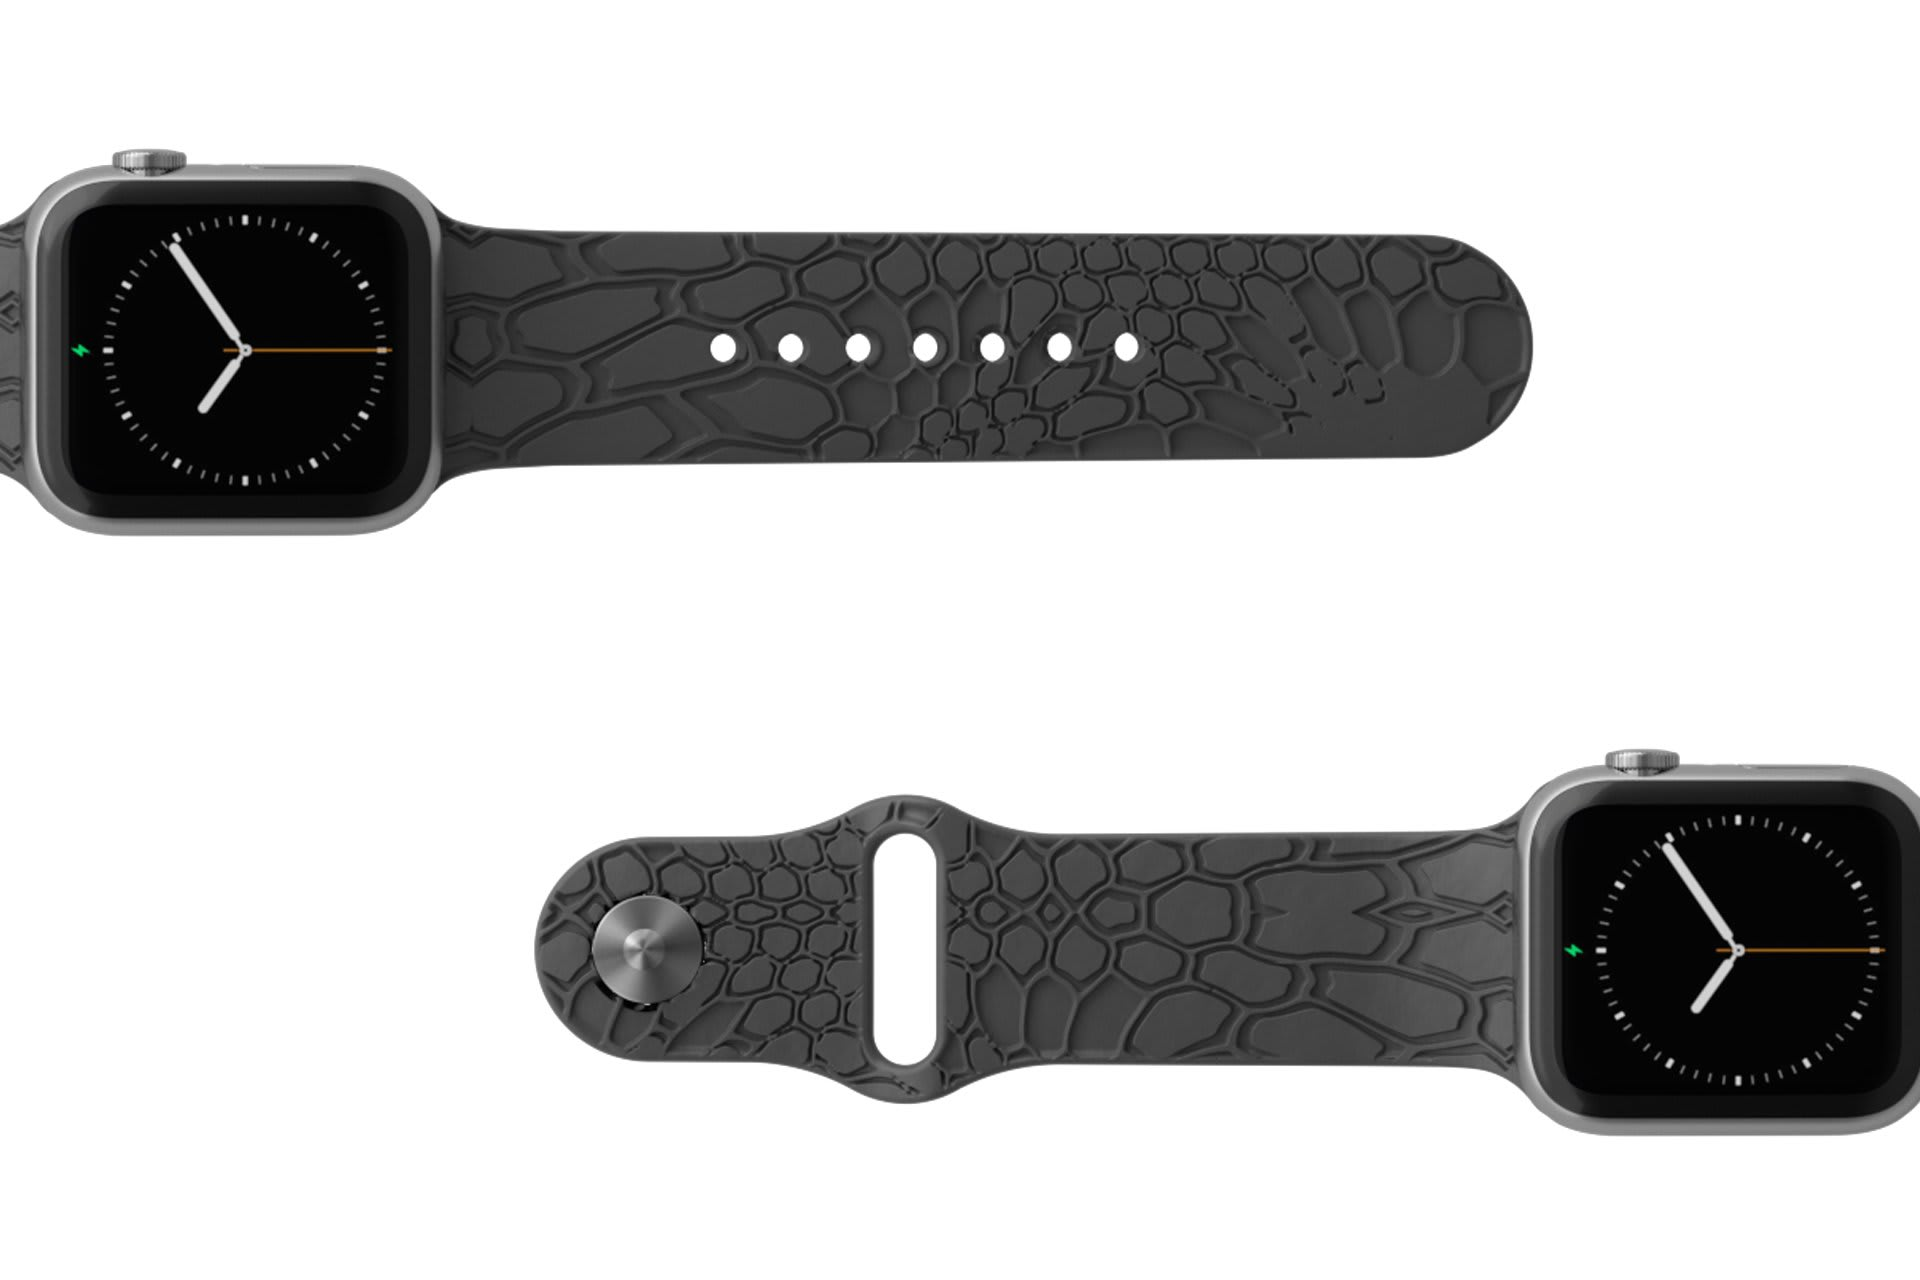 Dimension Kryptek Etch Deep Stone Grey Apple watch band with silver hardware viewed top down